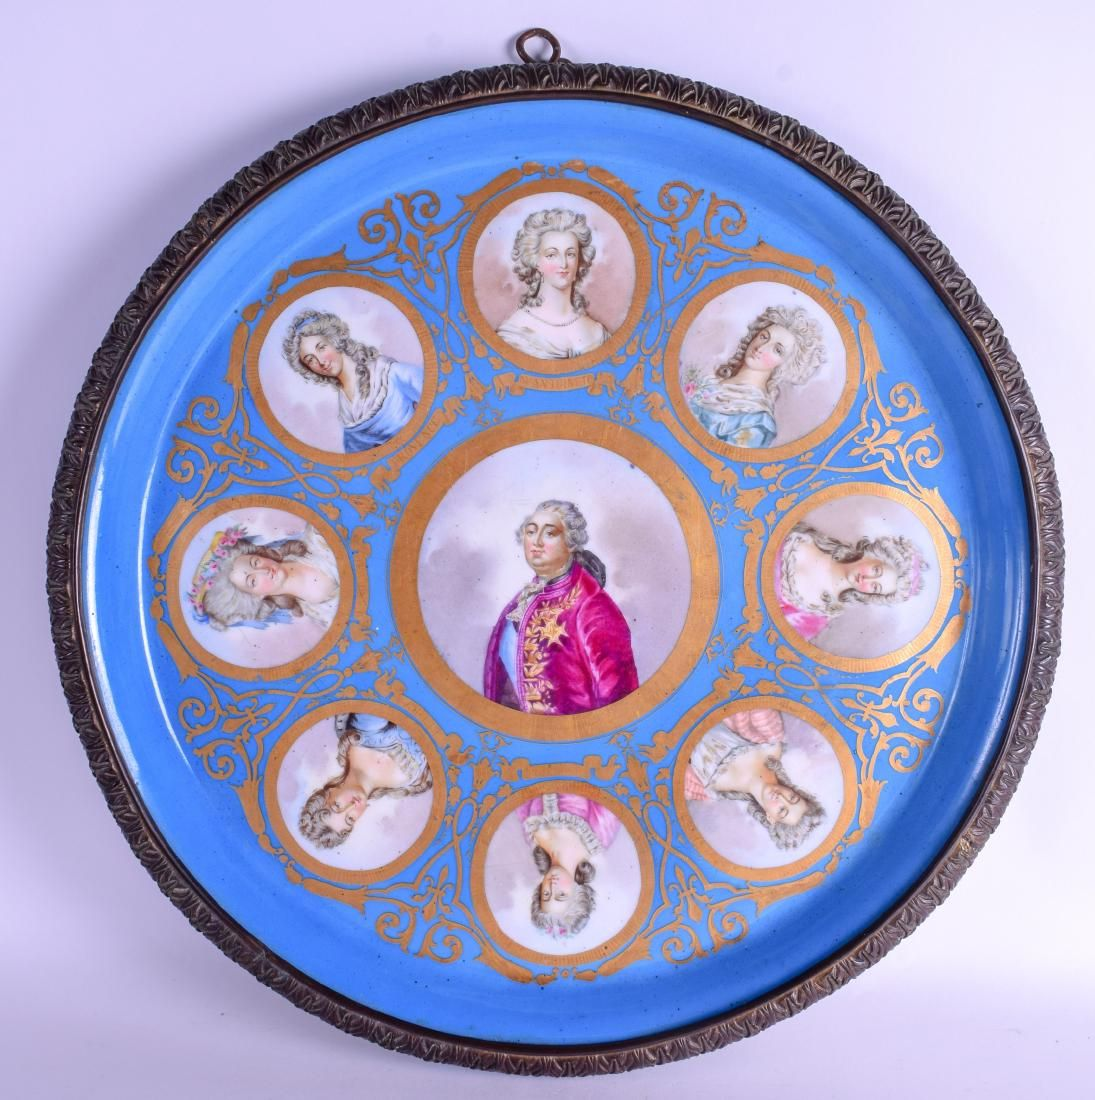 A LARGE 19TH CENTURY FRENCH SEVRES PORCELAIN WALL